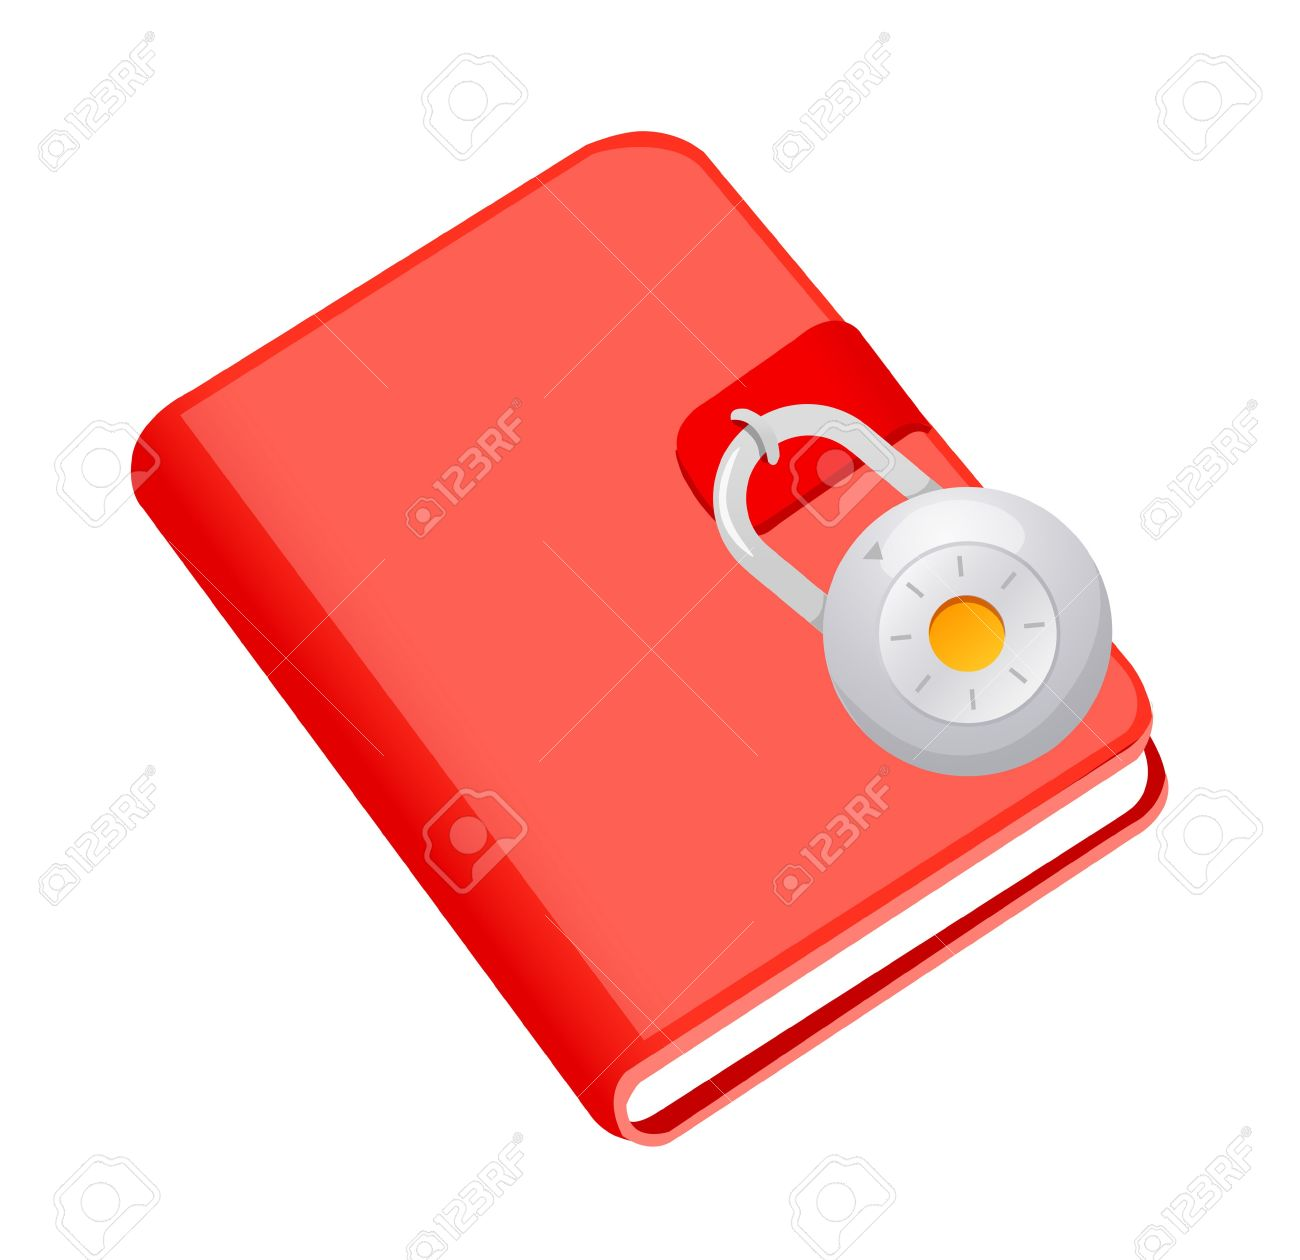 Icon Diary And Lock Royalty Free Cliparts, Vectors, And Stock.